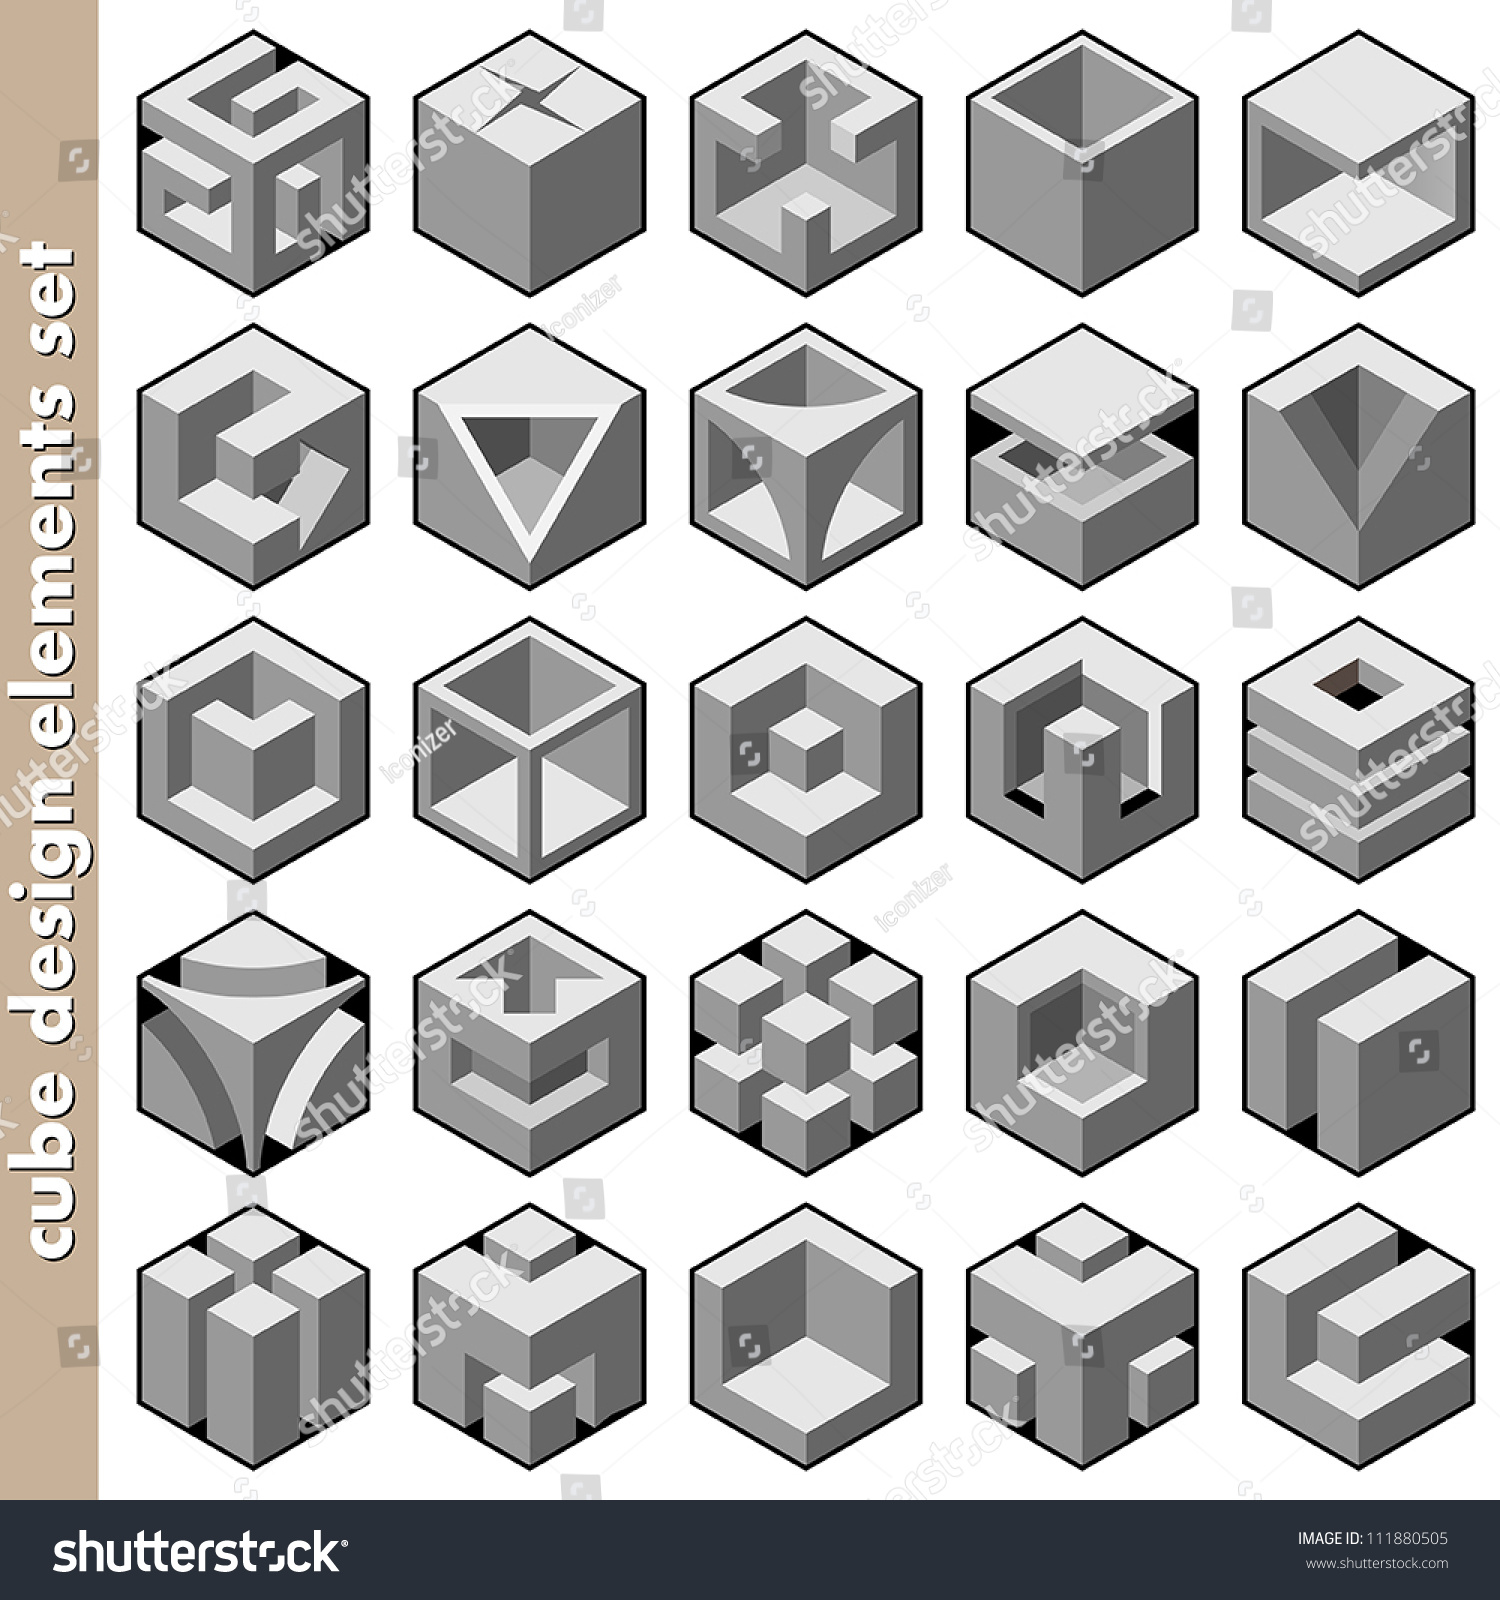 Cute 1 Year Calendar Template Thin 10 Envelope Window Template Solid 16 Oz Tumbler Template 16 Team Bracket Template Youthful 16 Year Old Resumes Black1811 Criminal Investigator Resume 3d Cube Logo Design Pack Stock Vector 111880505   Shutterstock